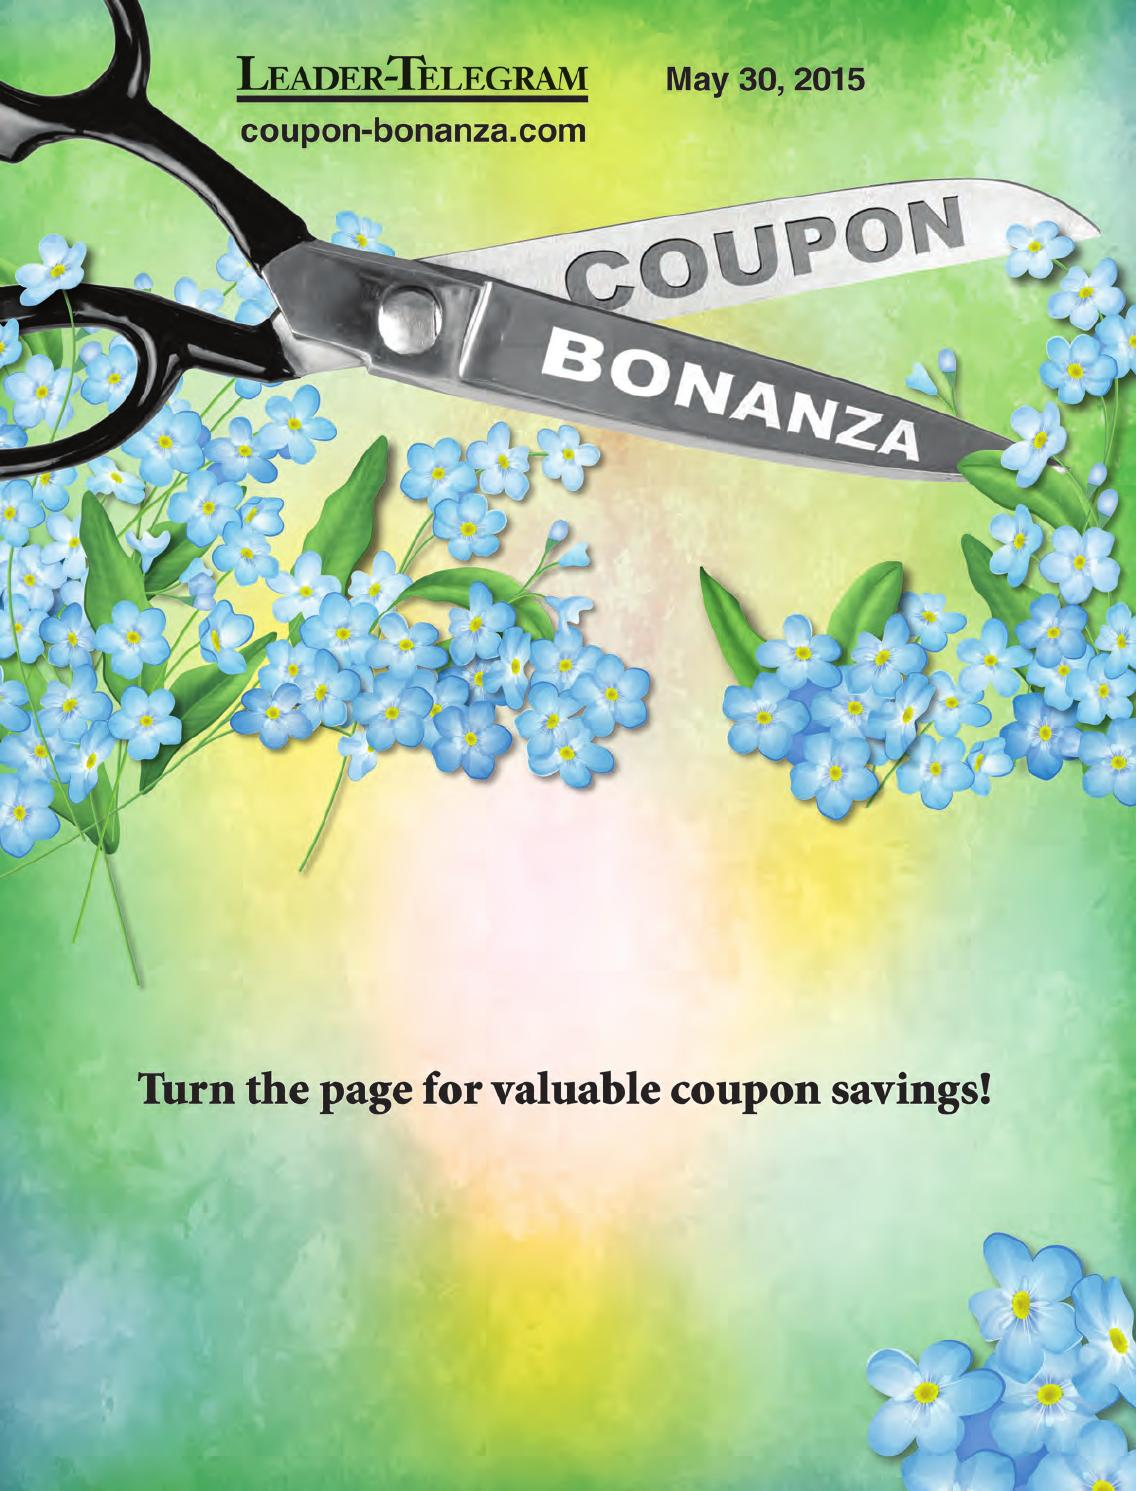 coupon bonanza may 30 2015 eau claire wi by leader telegram issuu